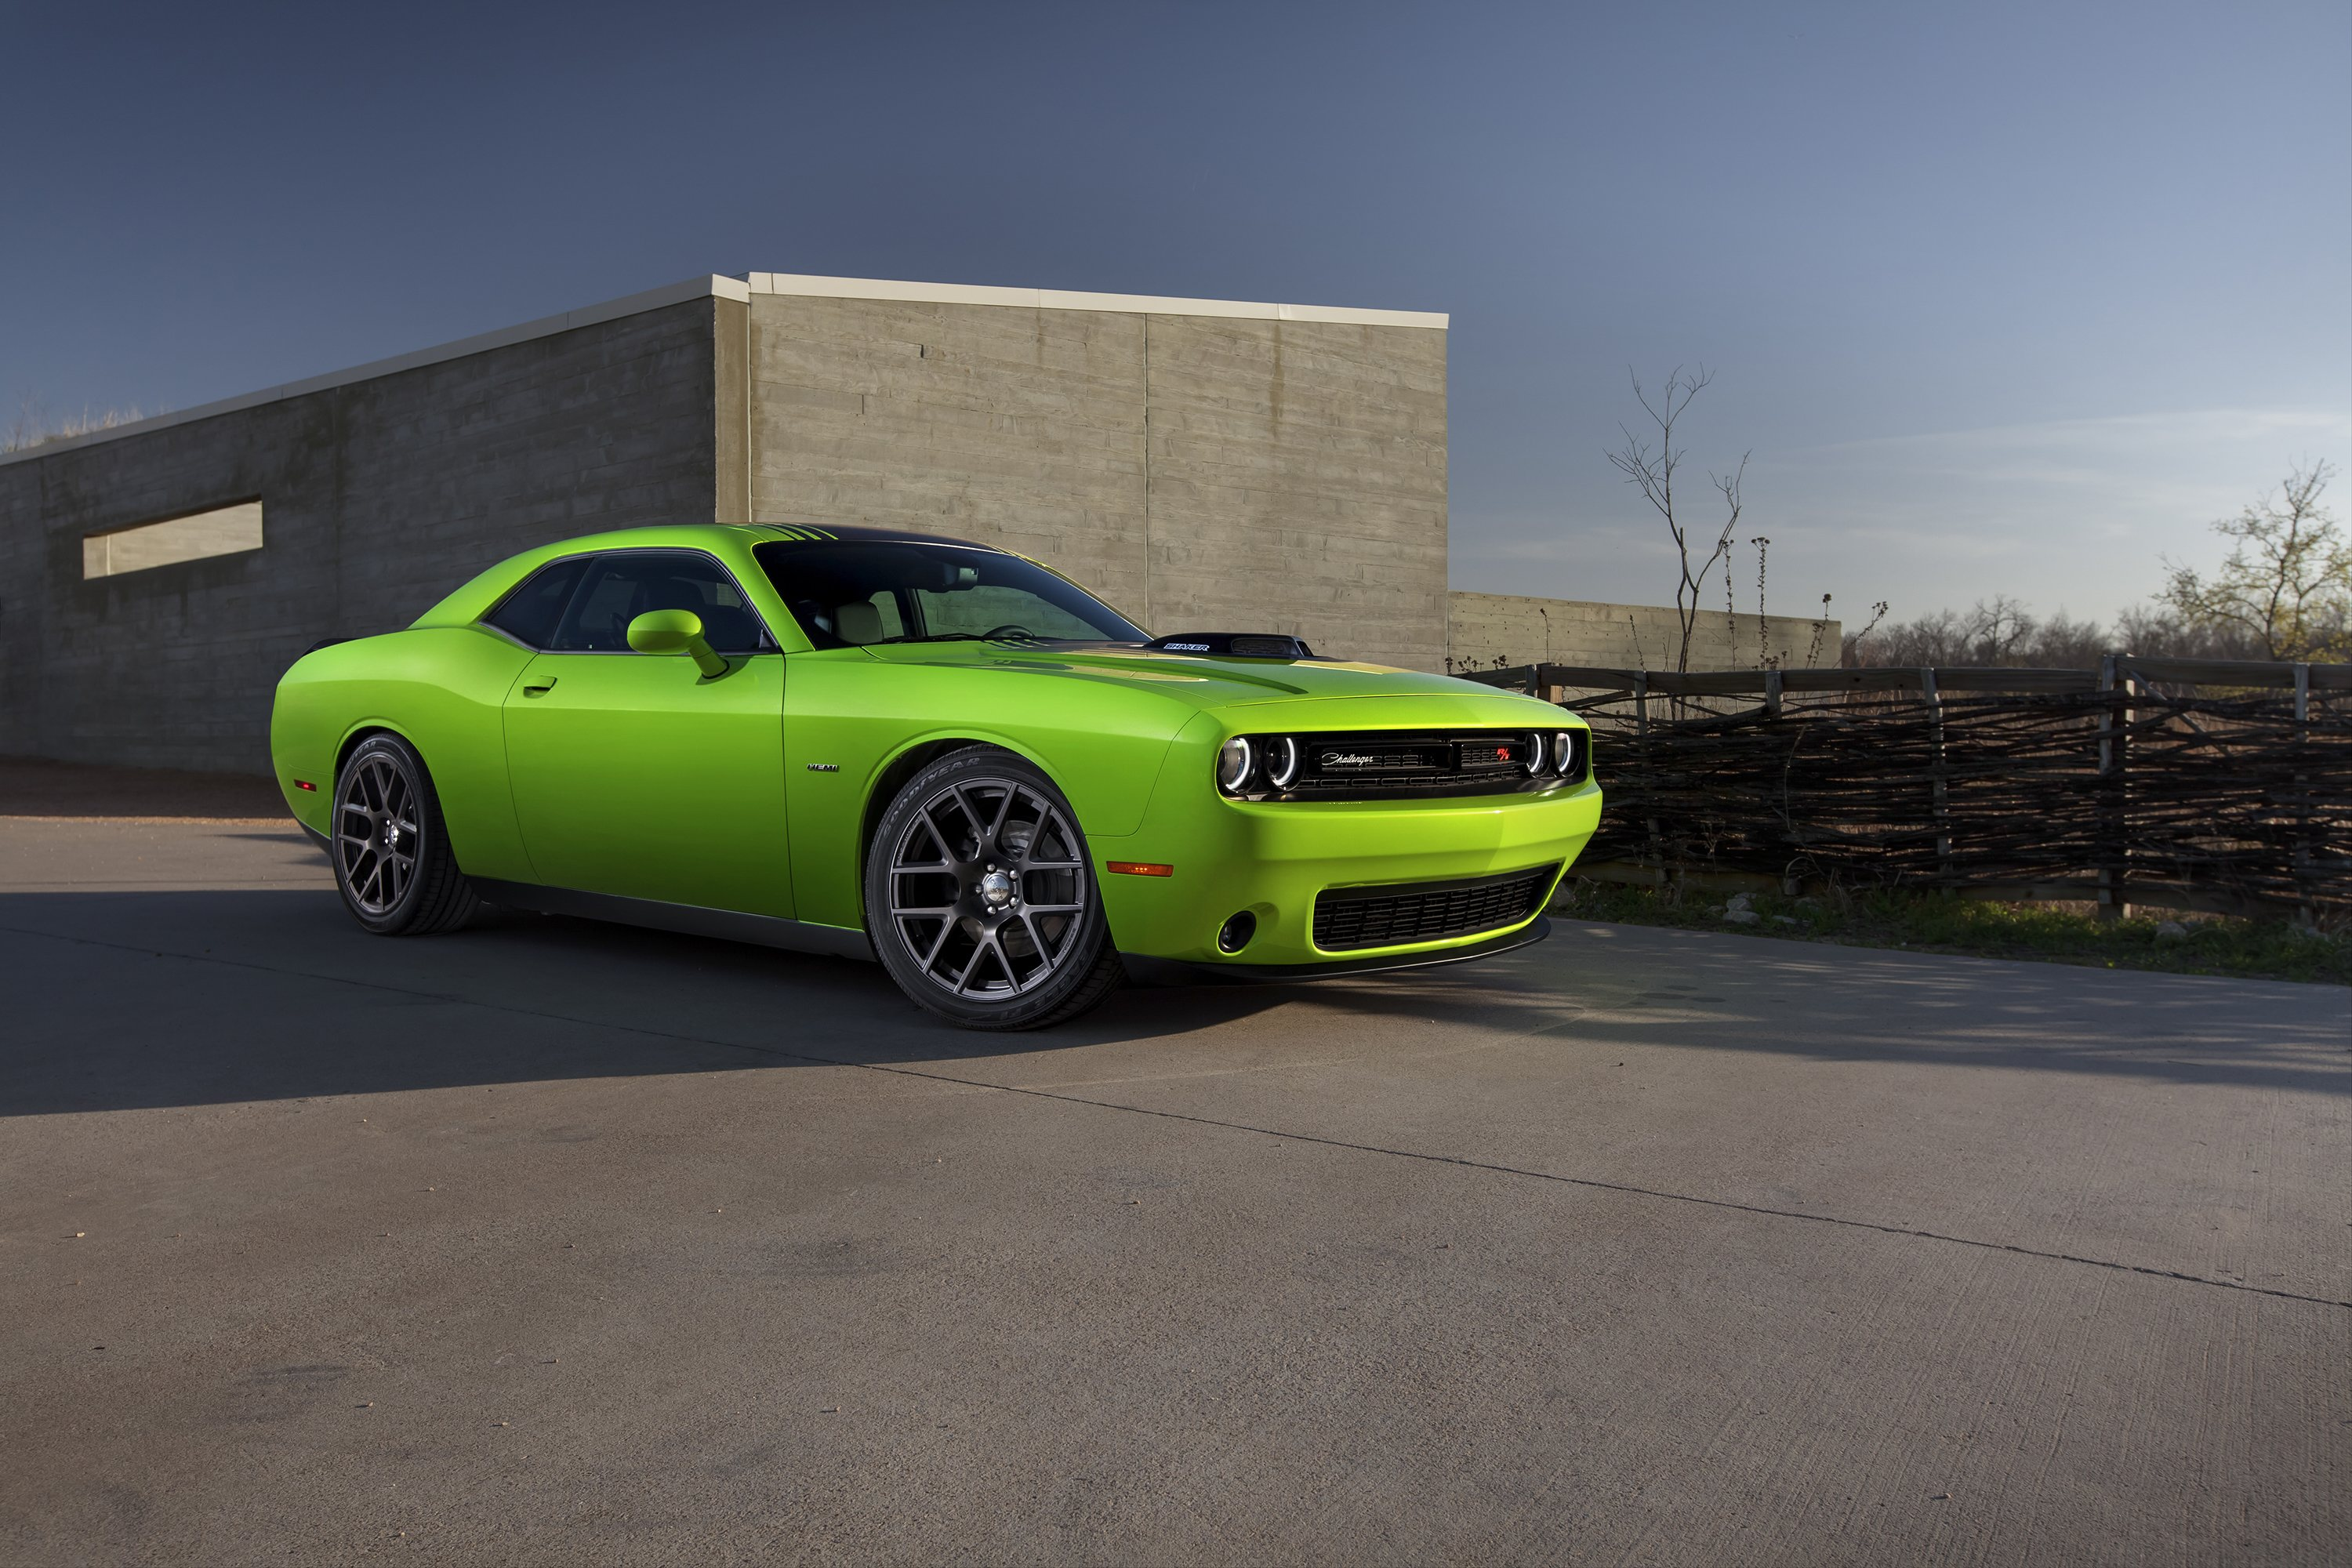 dodge flexes its muscle with new 2015 challenger pittsburgh post gazette. Black Bedroom Furniture Sets. Home Design Ideas